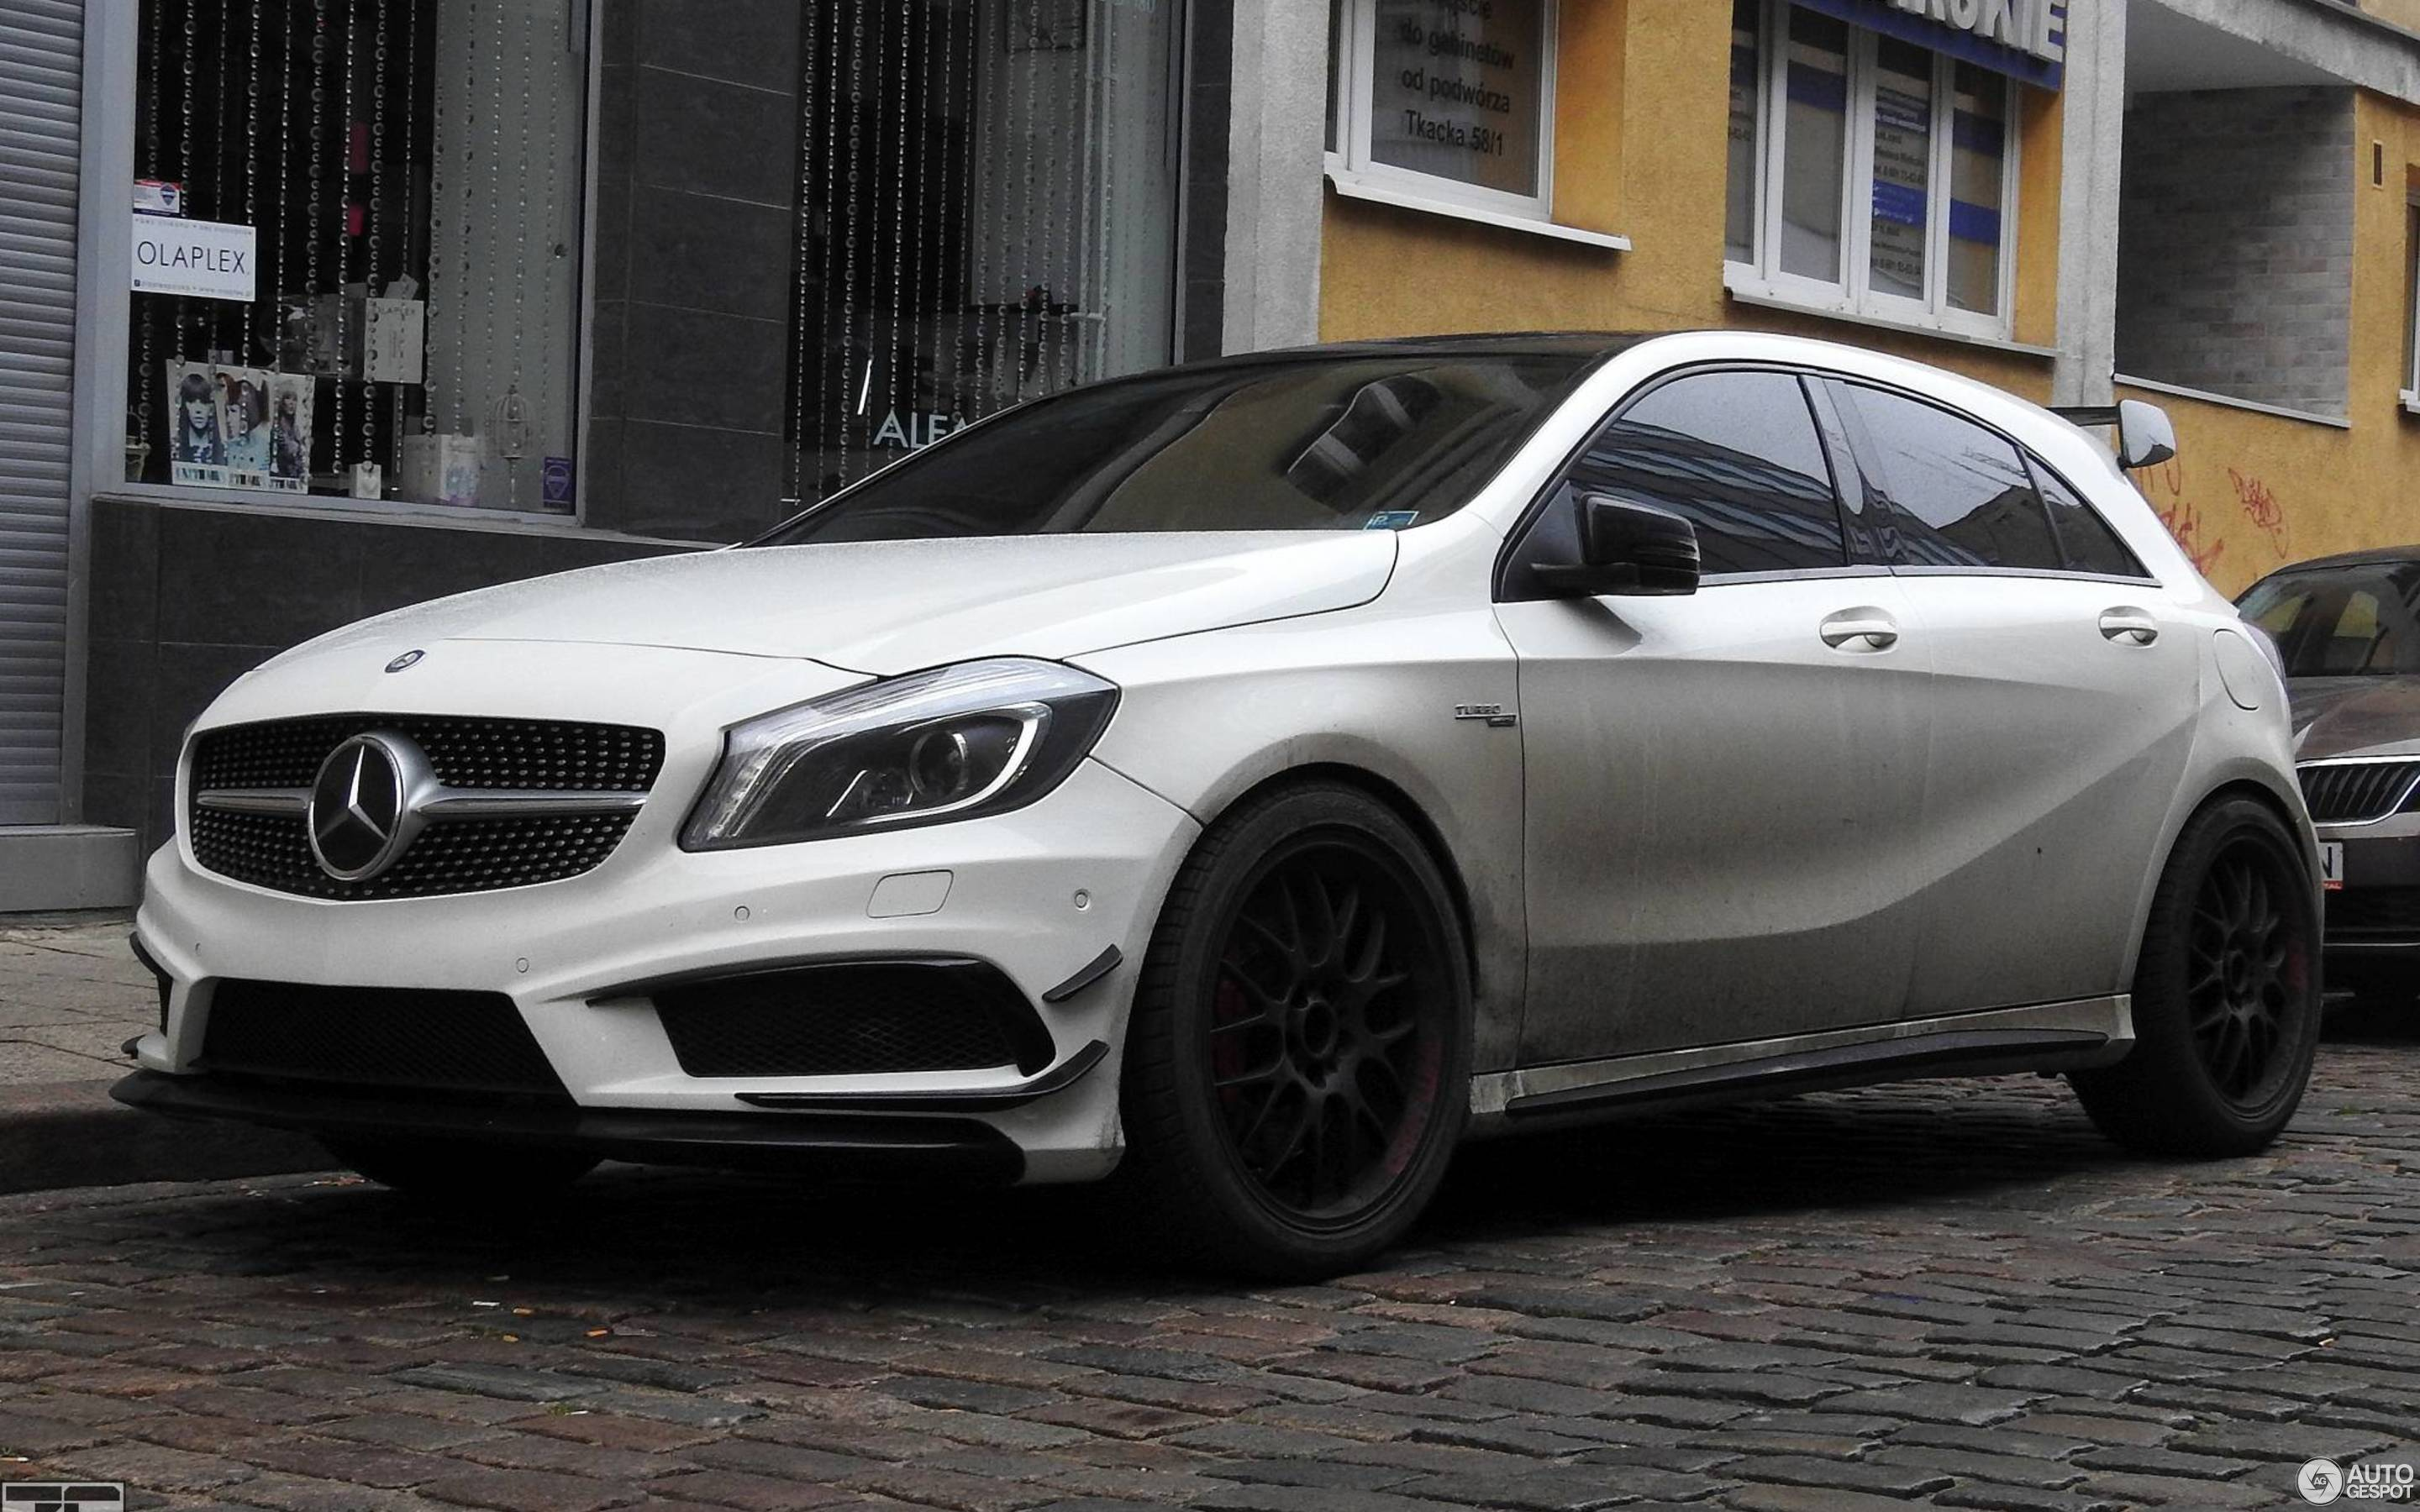 Mercedes Benz A 45 AMG 2 December 2018 Autogespot